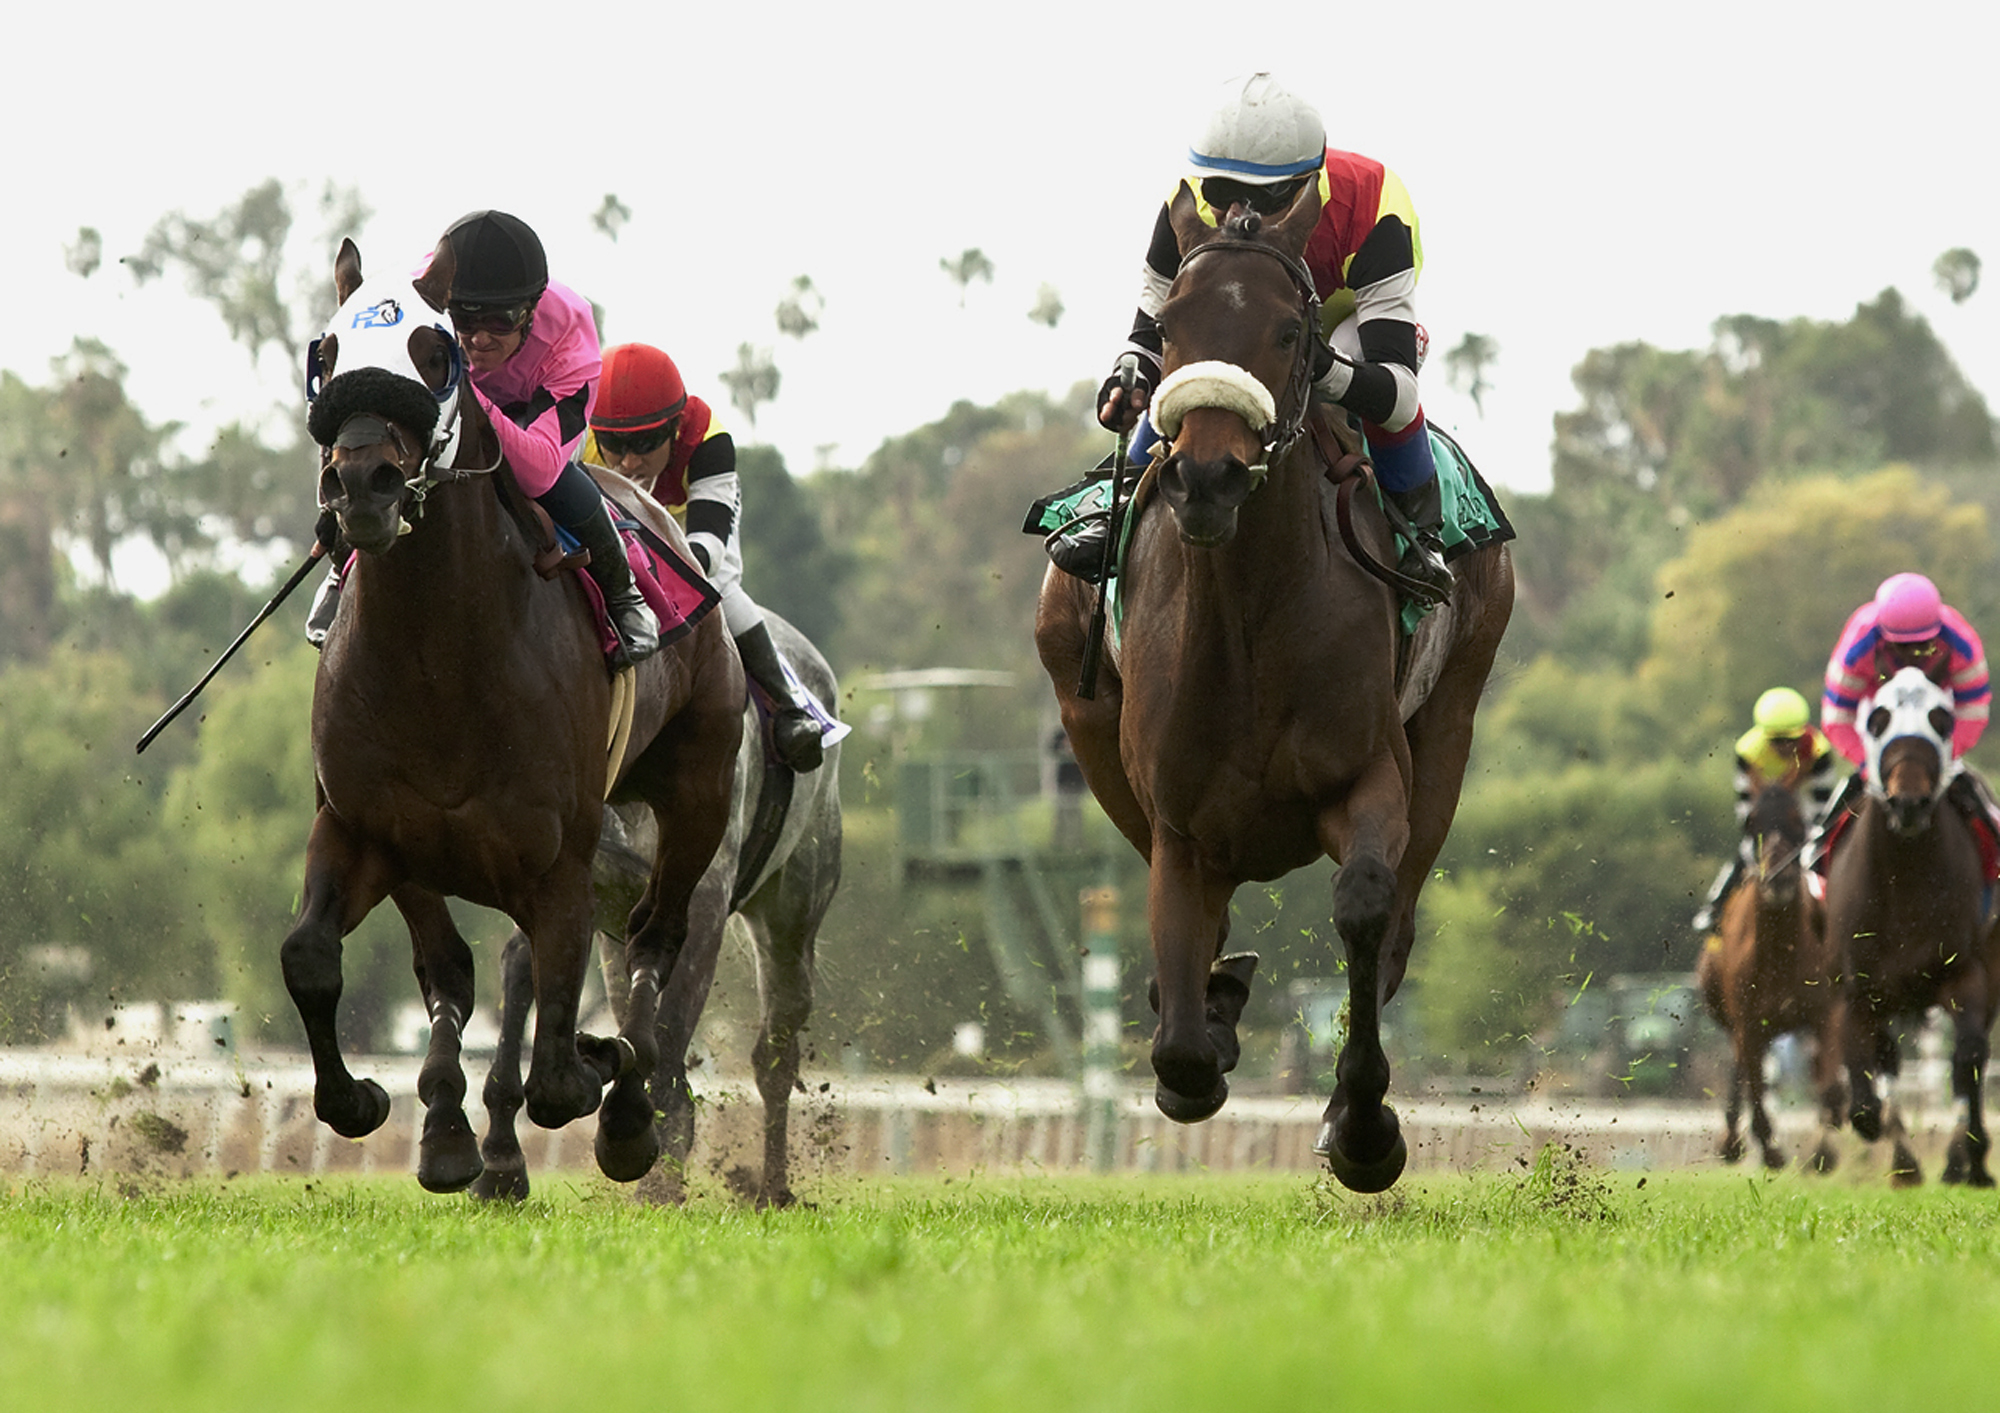 Haras Phillipson's Generosidade and jockey Tiago Pereira, right, hold off Highball, with Flavien Prat on it, compete in Santa Anita Park, Arcadia, Calif., Sunday, March 13, 2016 They won the Grade II $100,000. (Benoit Photo via AP) MANDATORY CREDIT